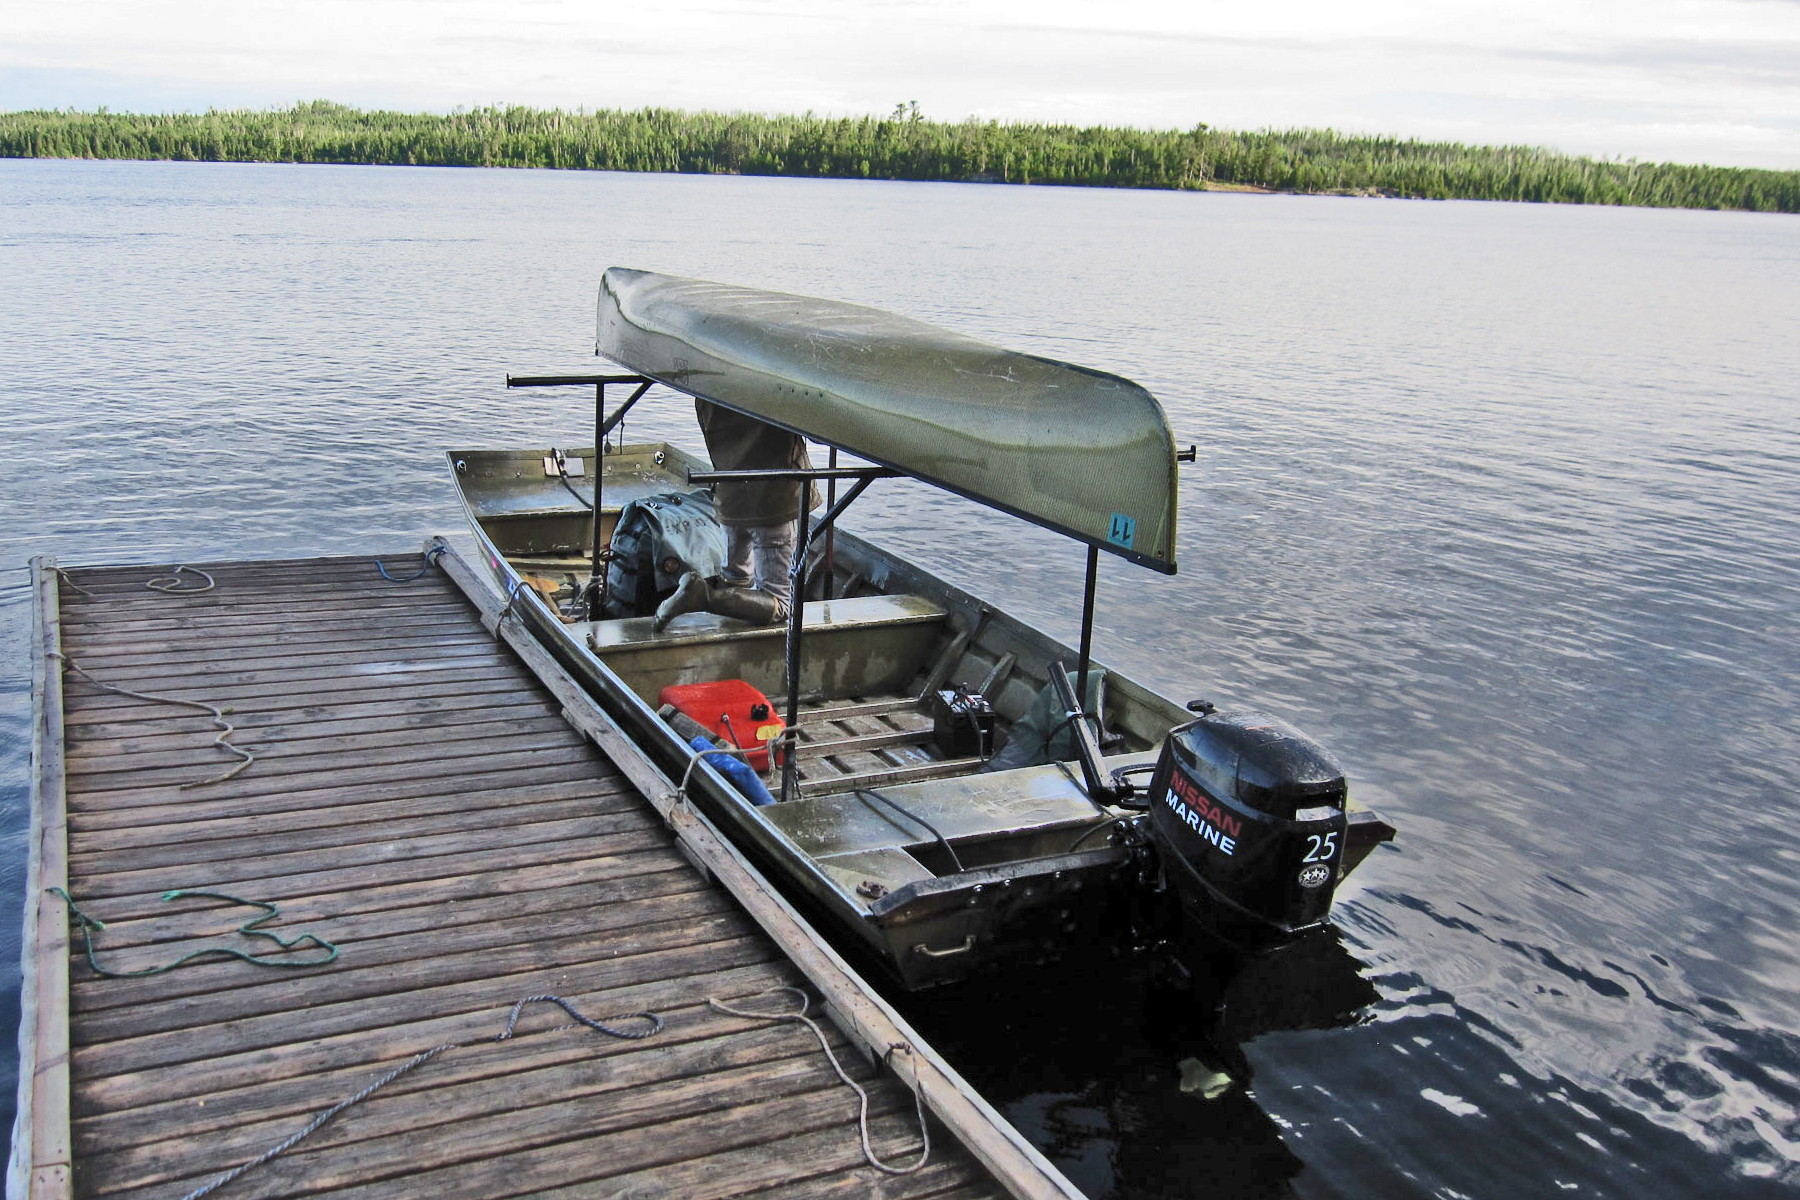 Towboat in the Boundary Waters by David Grant via Flickr